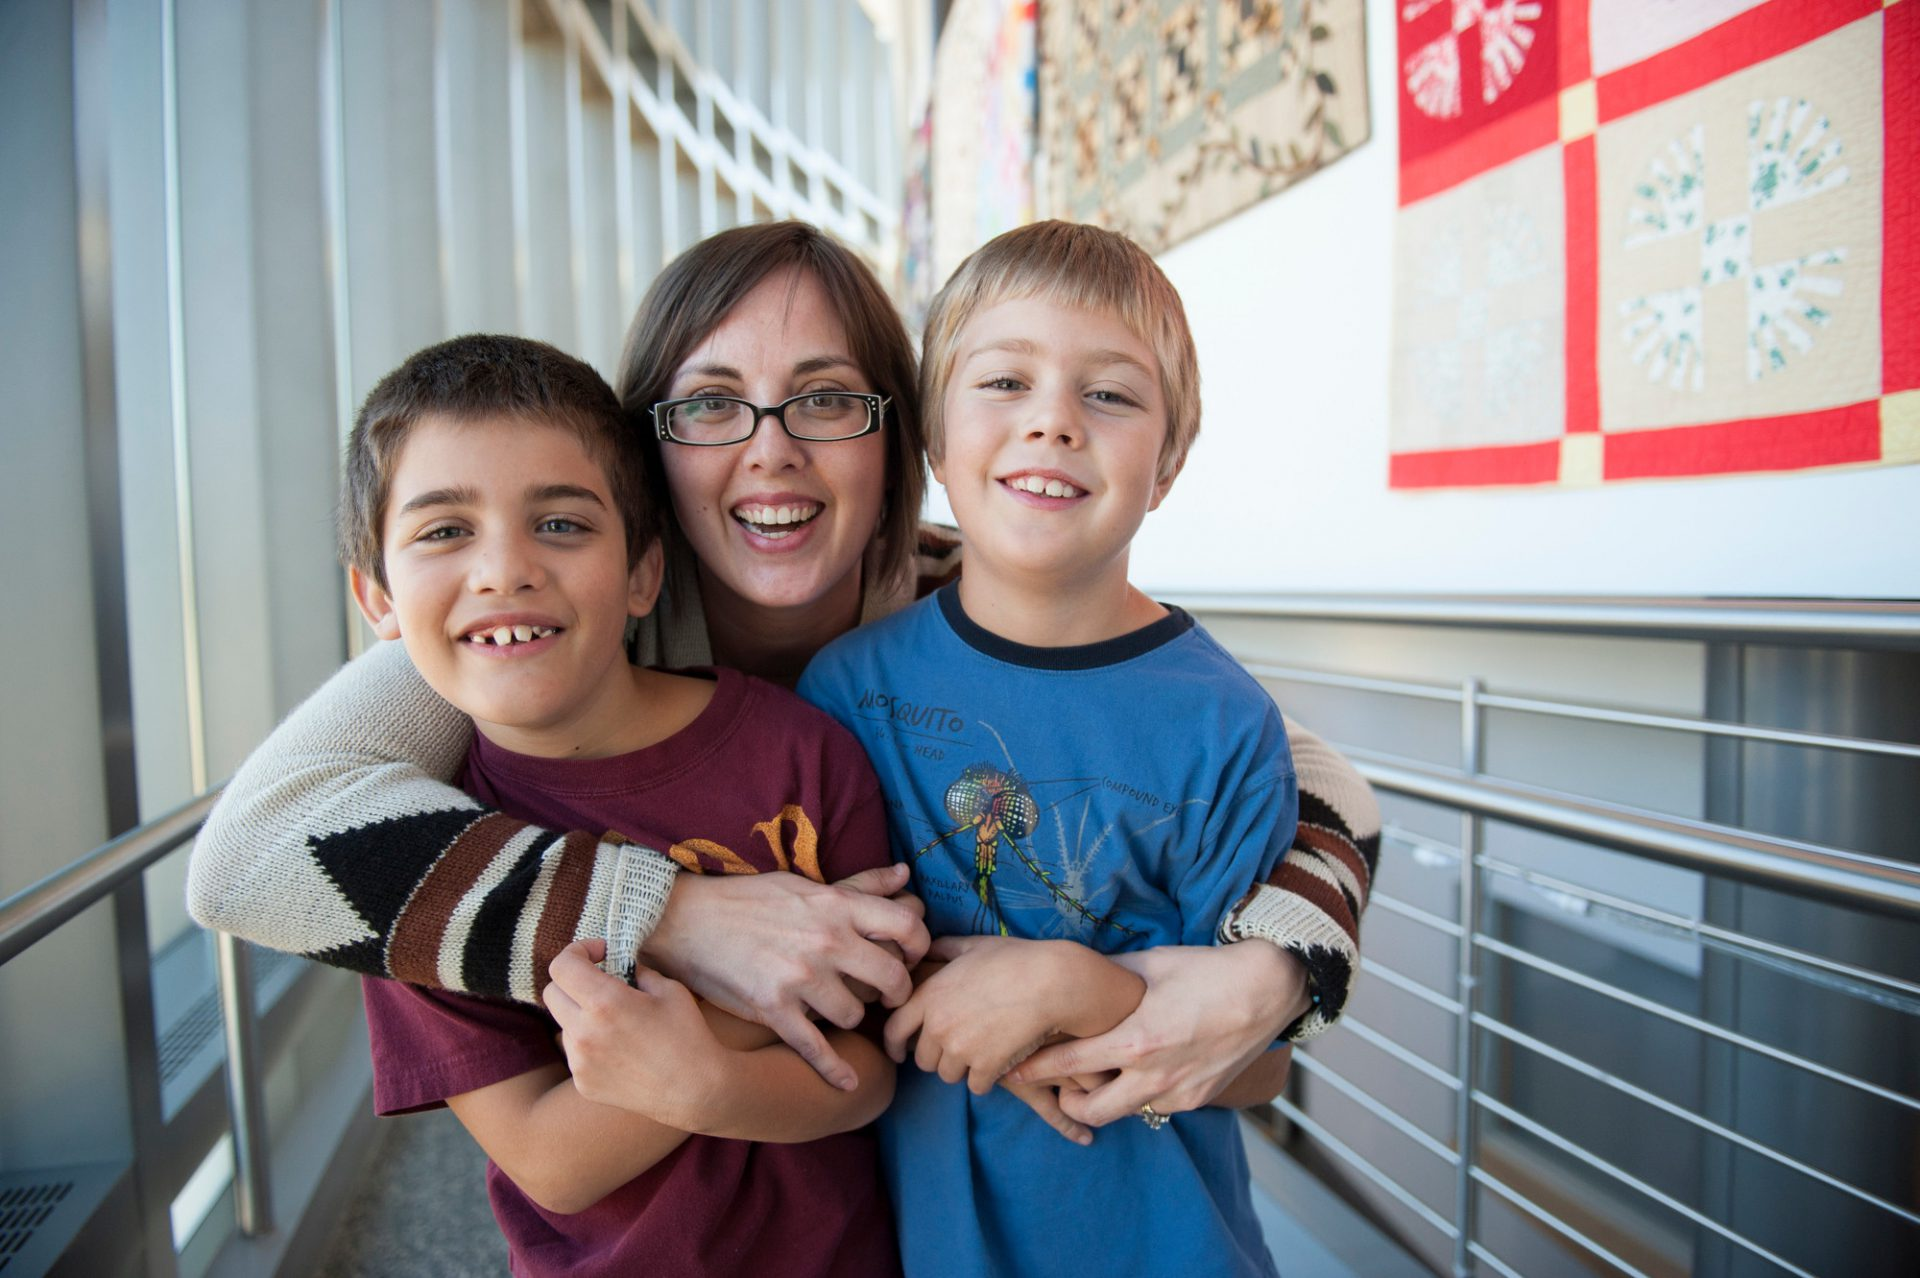 Photo: A mother and her two young sons at the International Quilt Study Center & Museum in Lincoln, Nebraska.